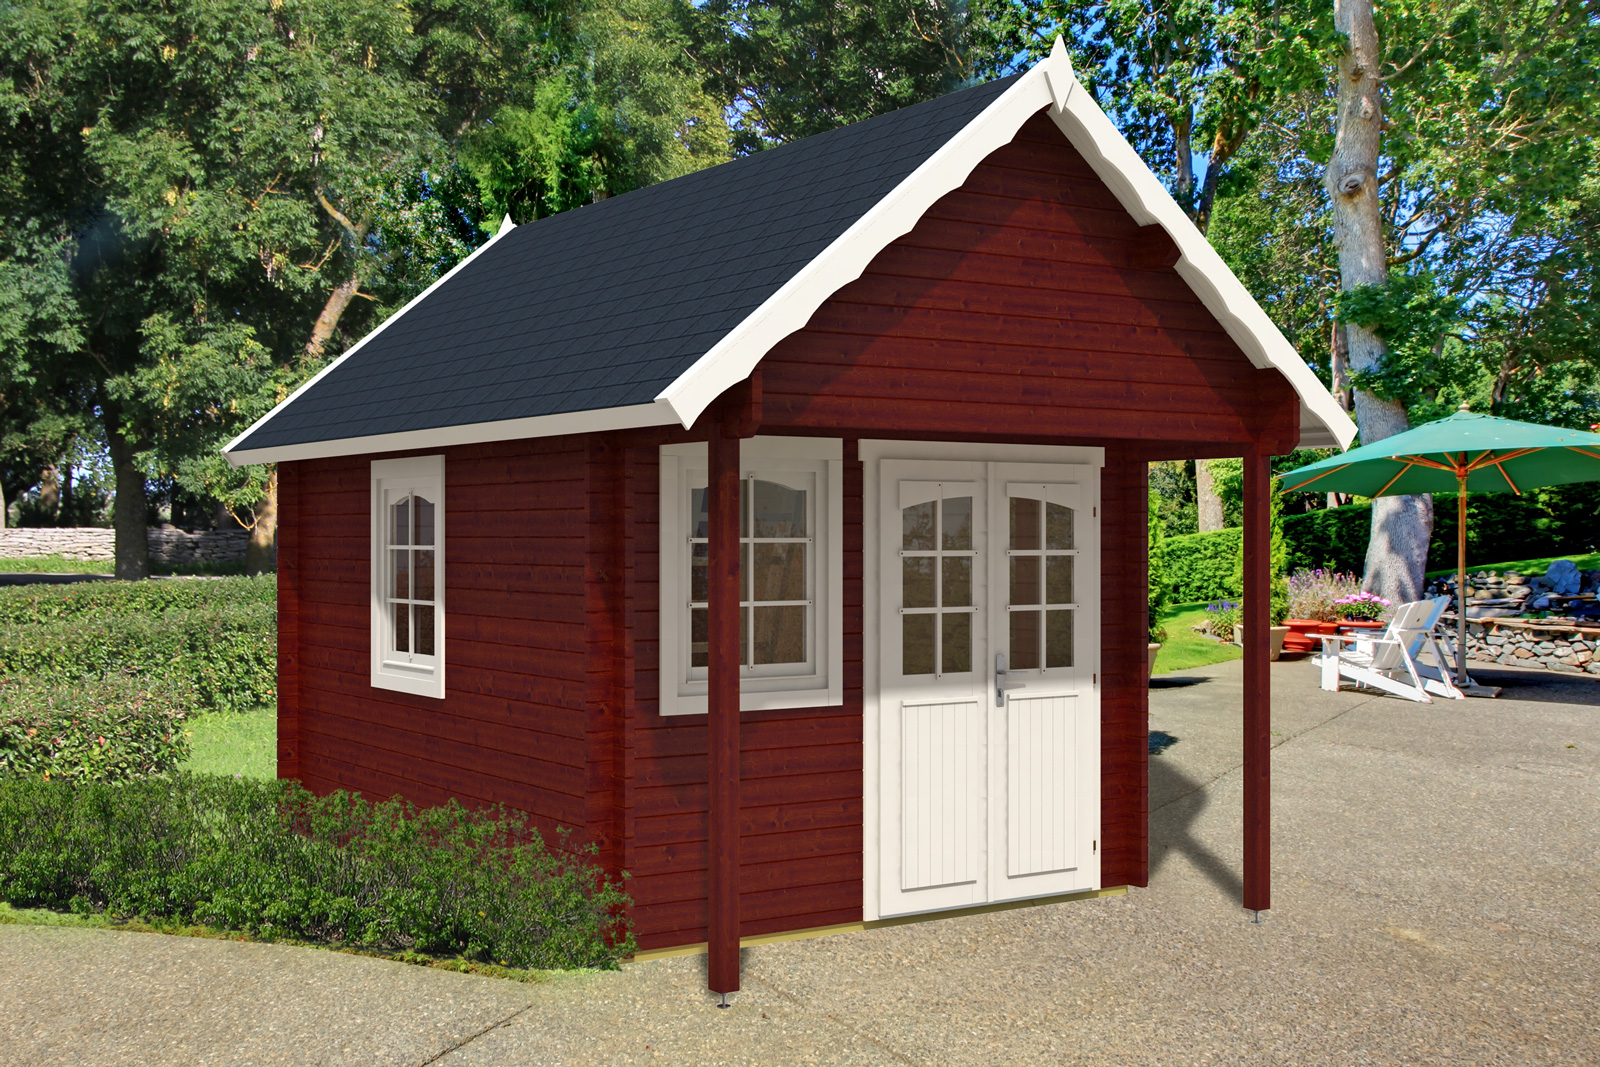 Bunkie prefab log cabin kit 150 sqft for Small cabin kits